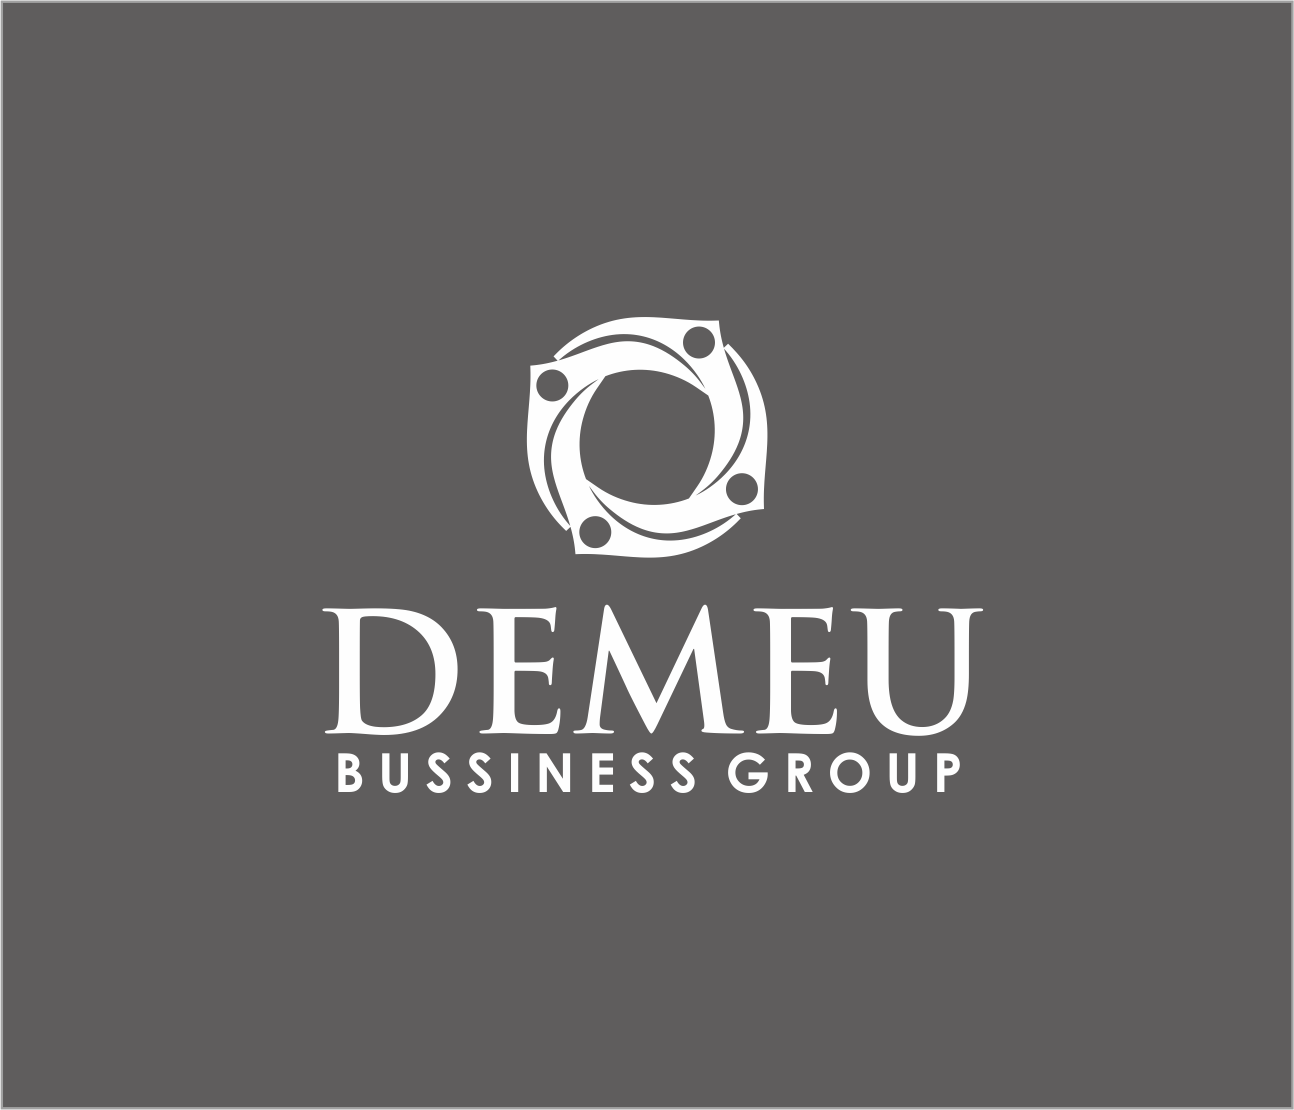 Logo Design by Armada Jamaluddin - Entry No. 146 in the Logo Design Contest Captivating Logo Design for DEMEU Business Group.